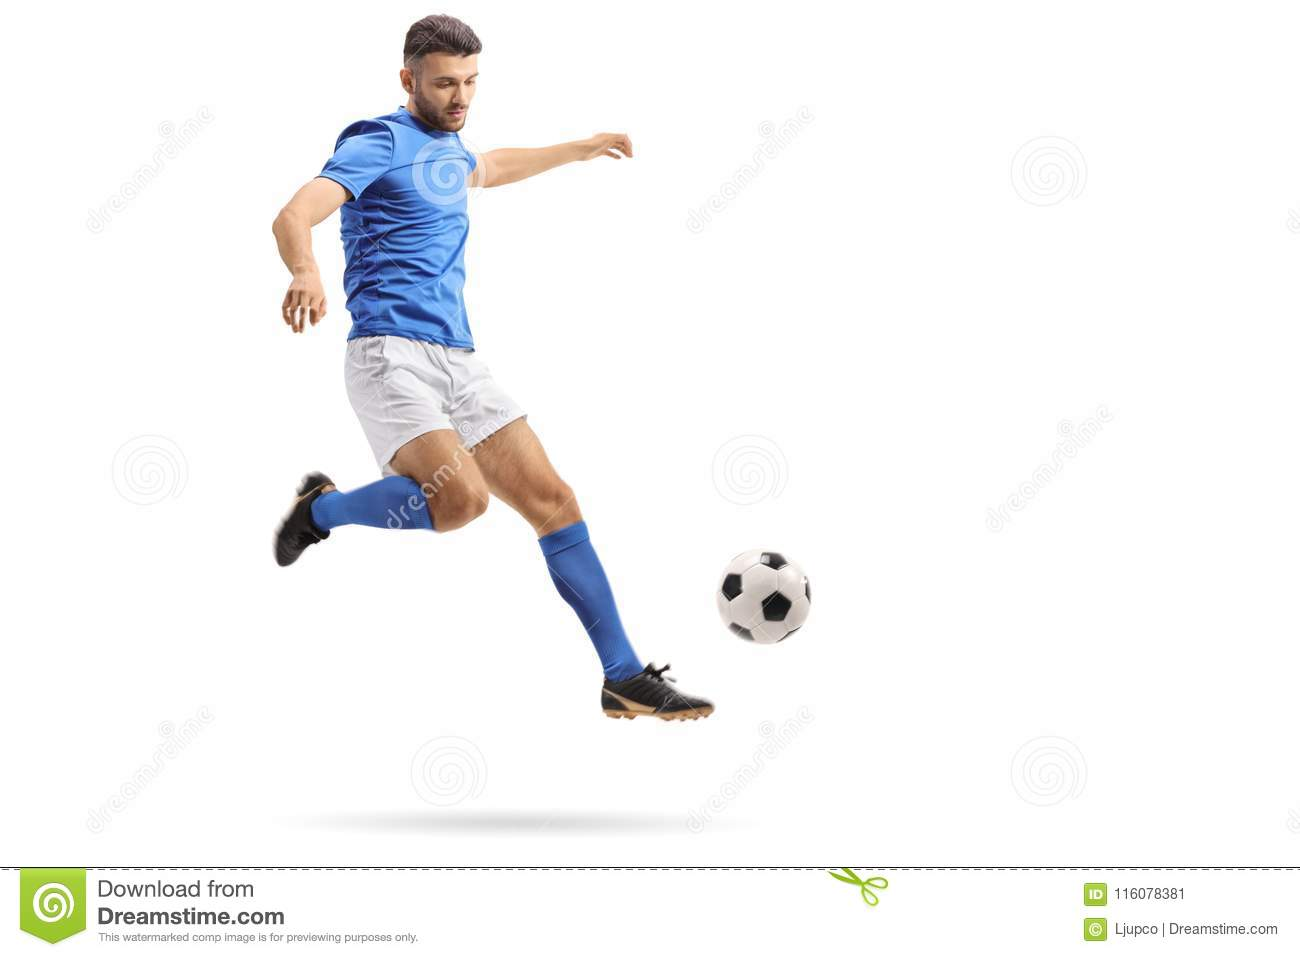 Soccer player in mid-air kicking a football